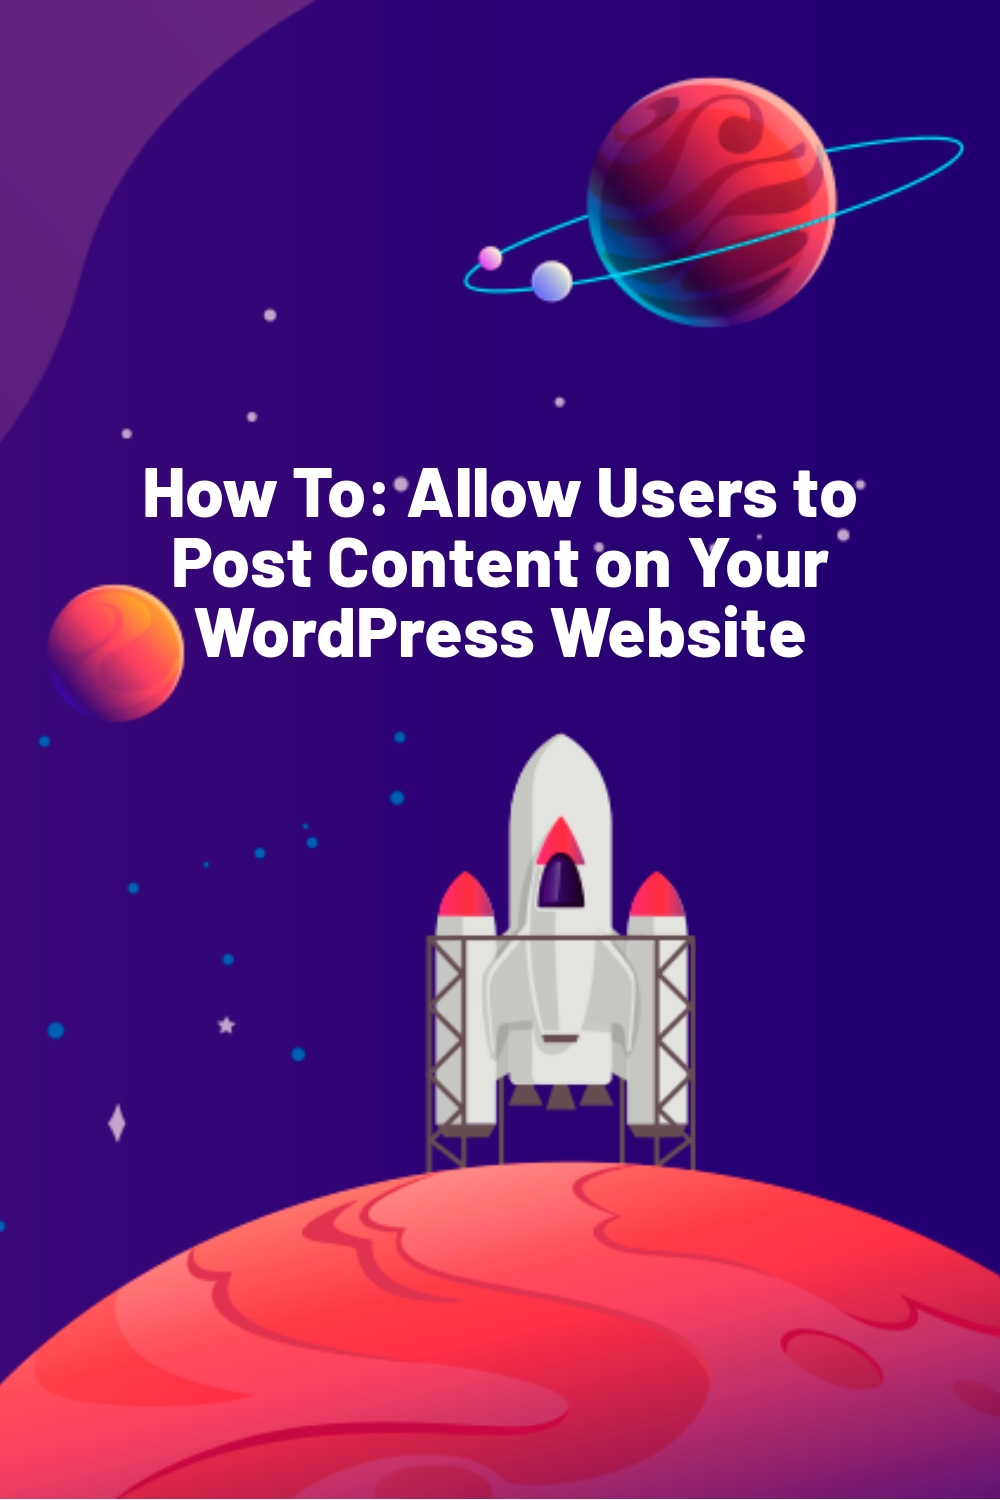 How To: Allow Users to Post Content on Your WordPress Website